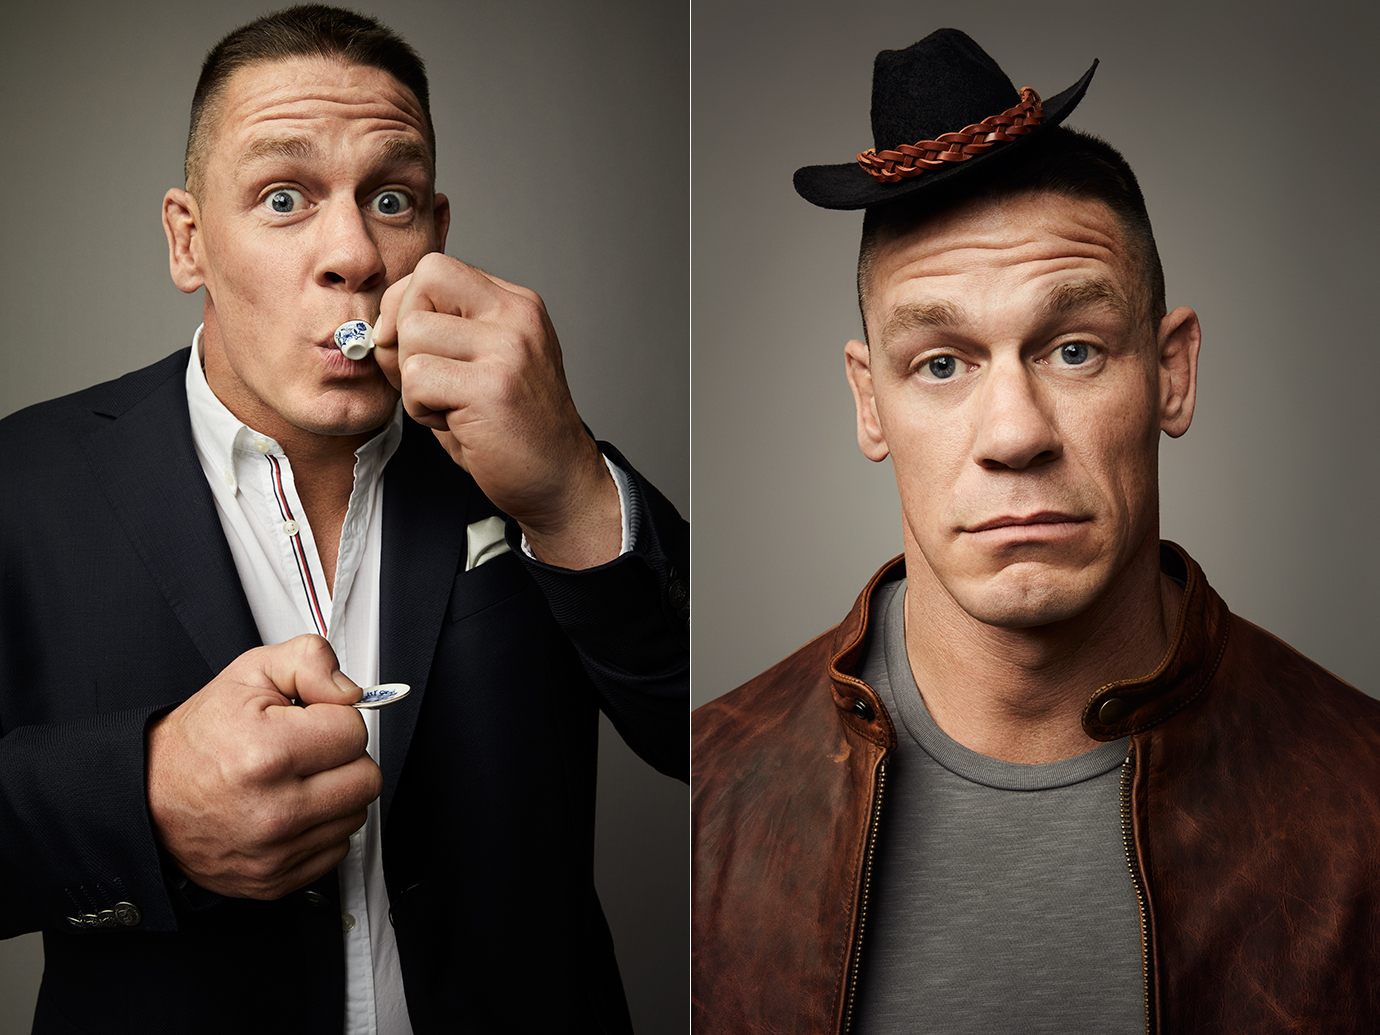 John Cena photographed for the May 2018 issue of Men's Journal by Art Streiber.